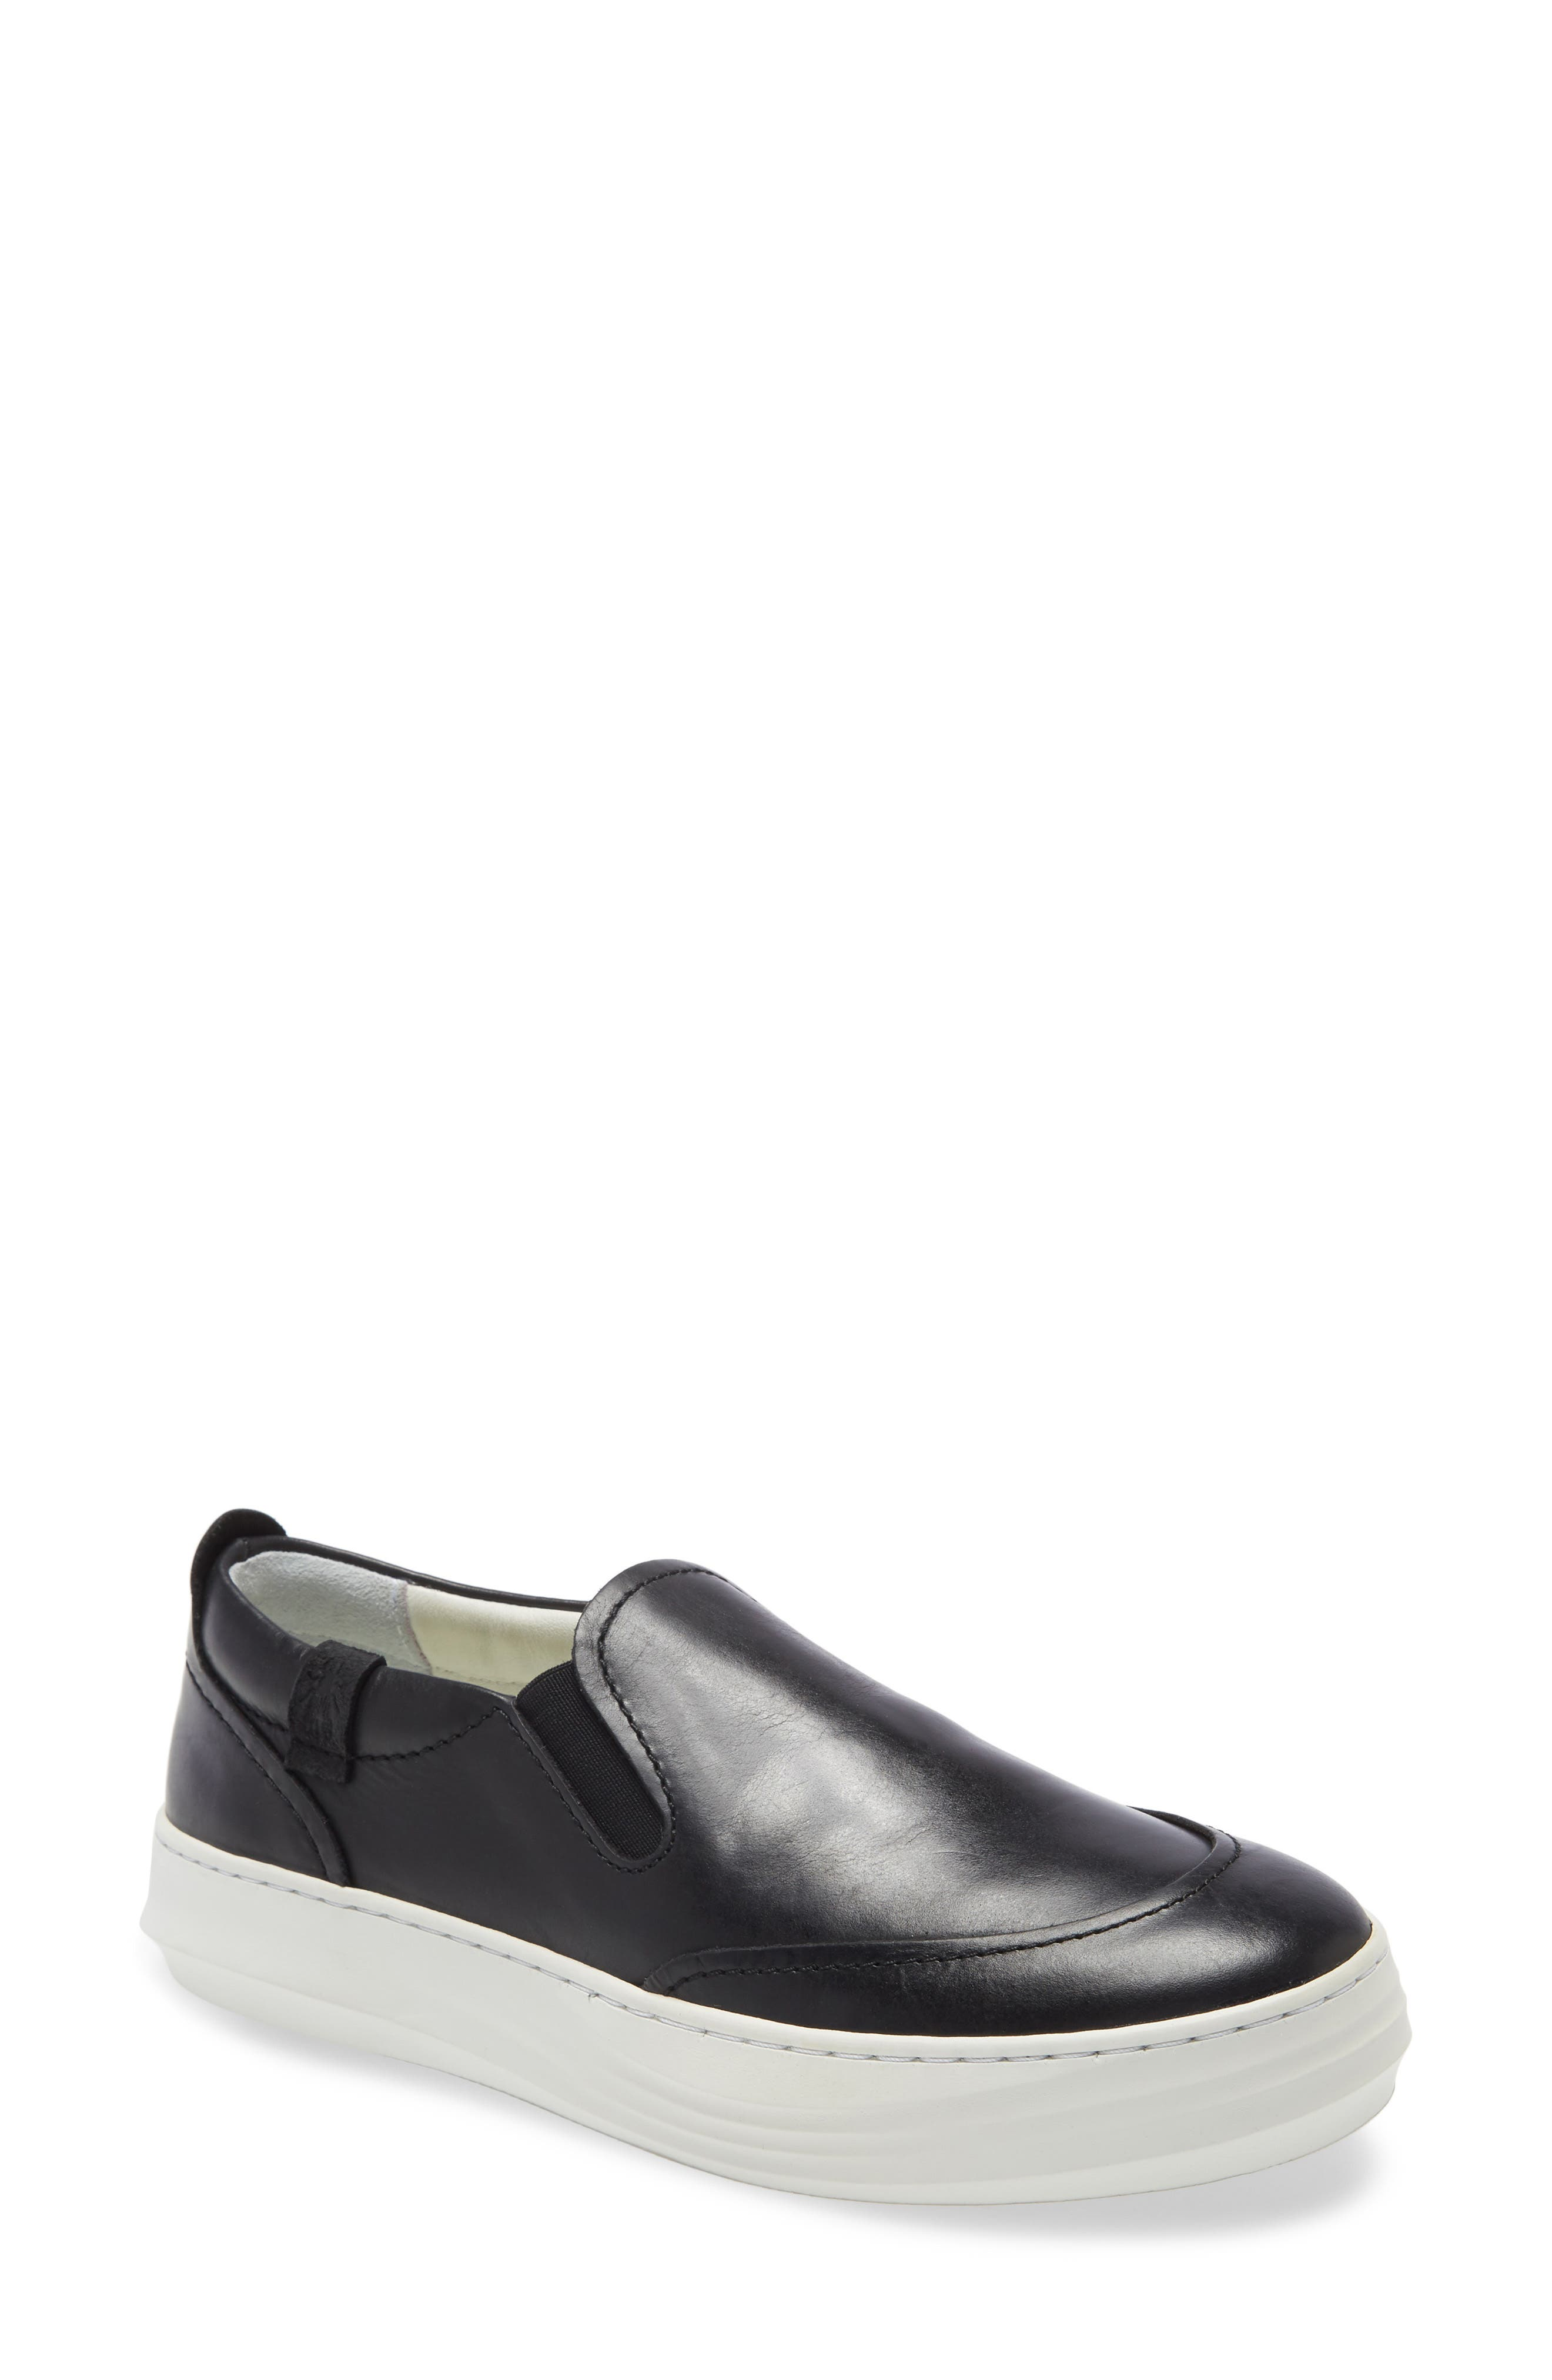 A padded collar and foam-cushioned footbed deliver comfort in this platform-boosted slip-on sneaker. Style Name: Fly London Cezi Platform Sneaker (Women). Style Number: 6002345. Available in stores.